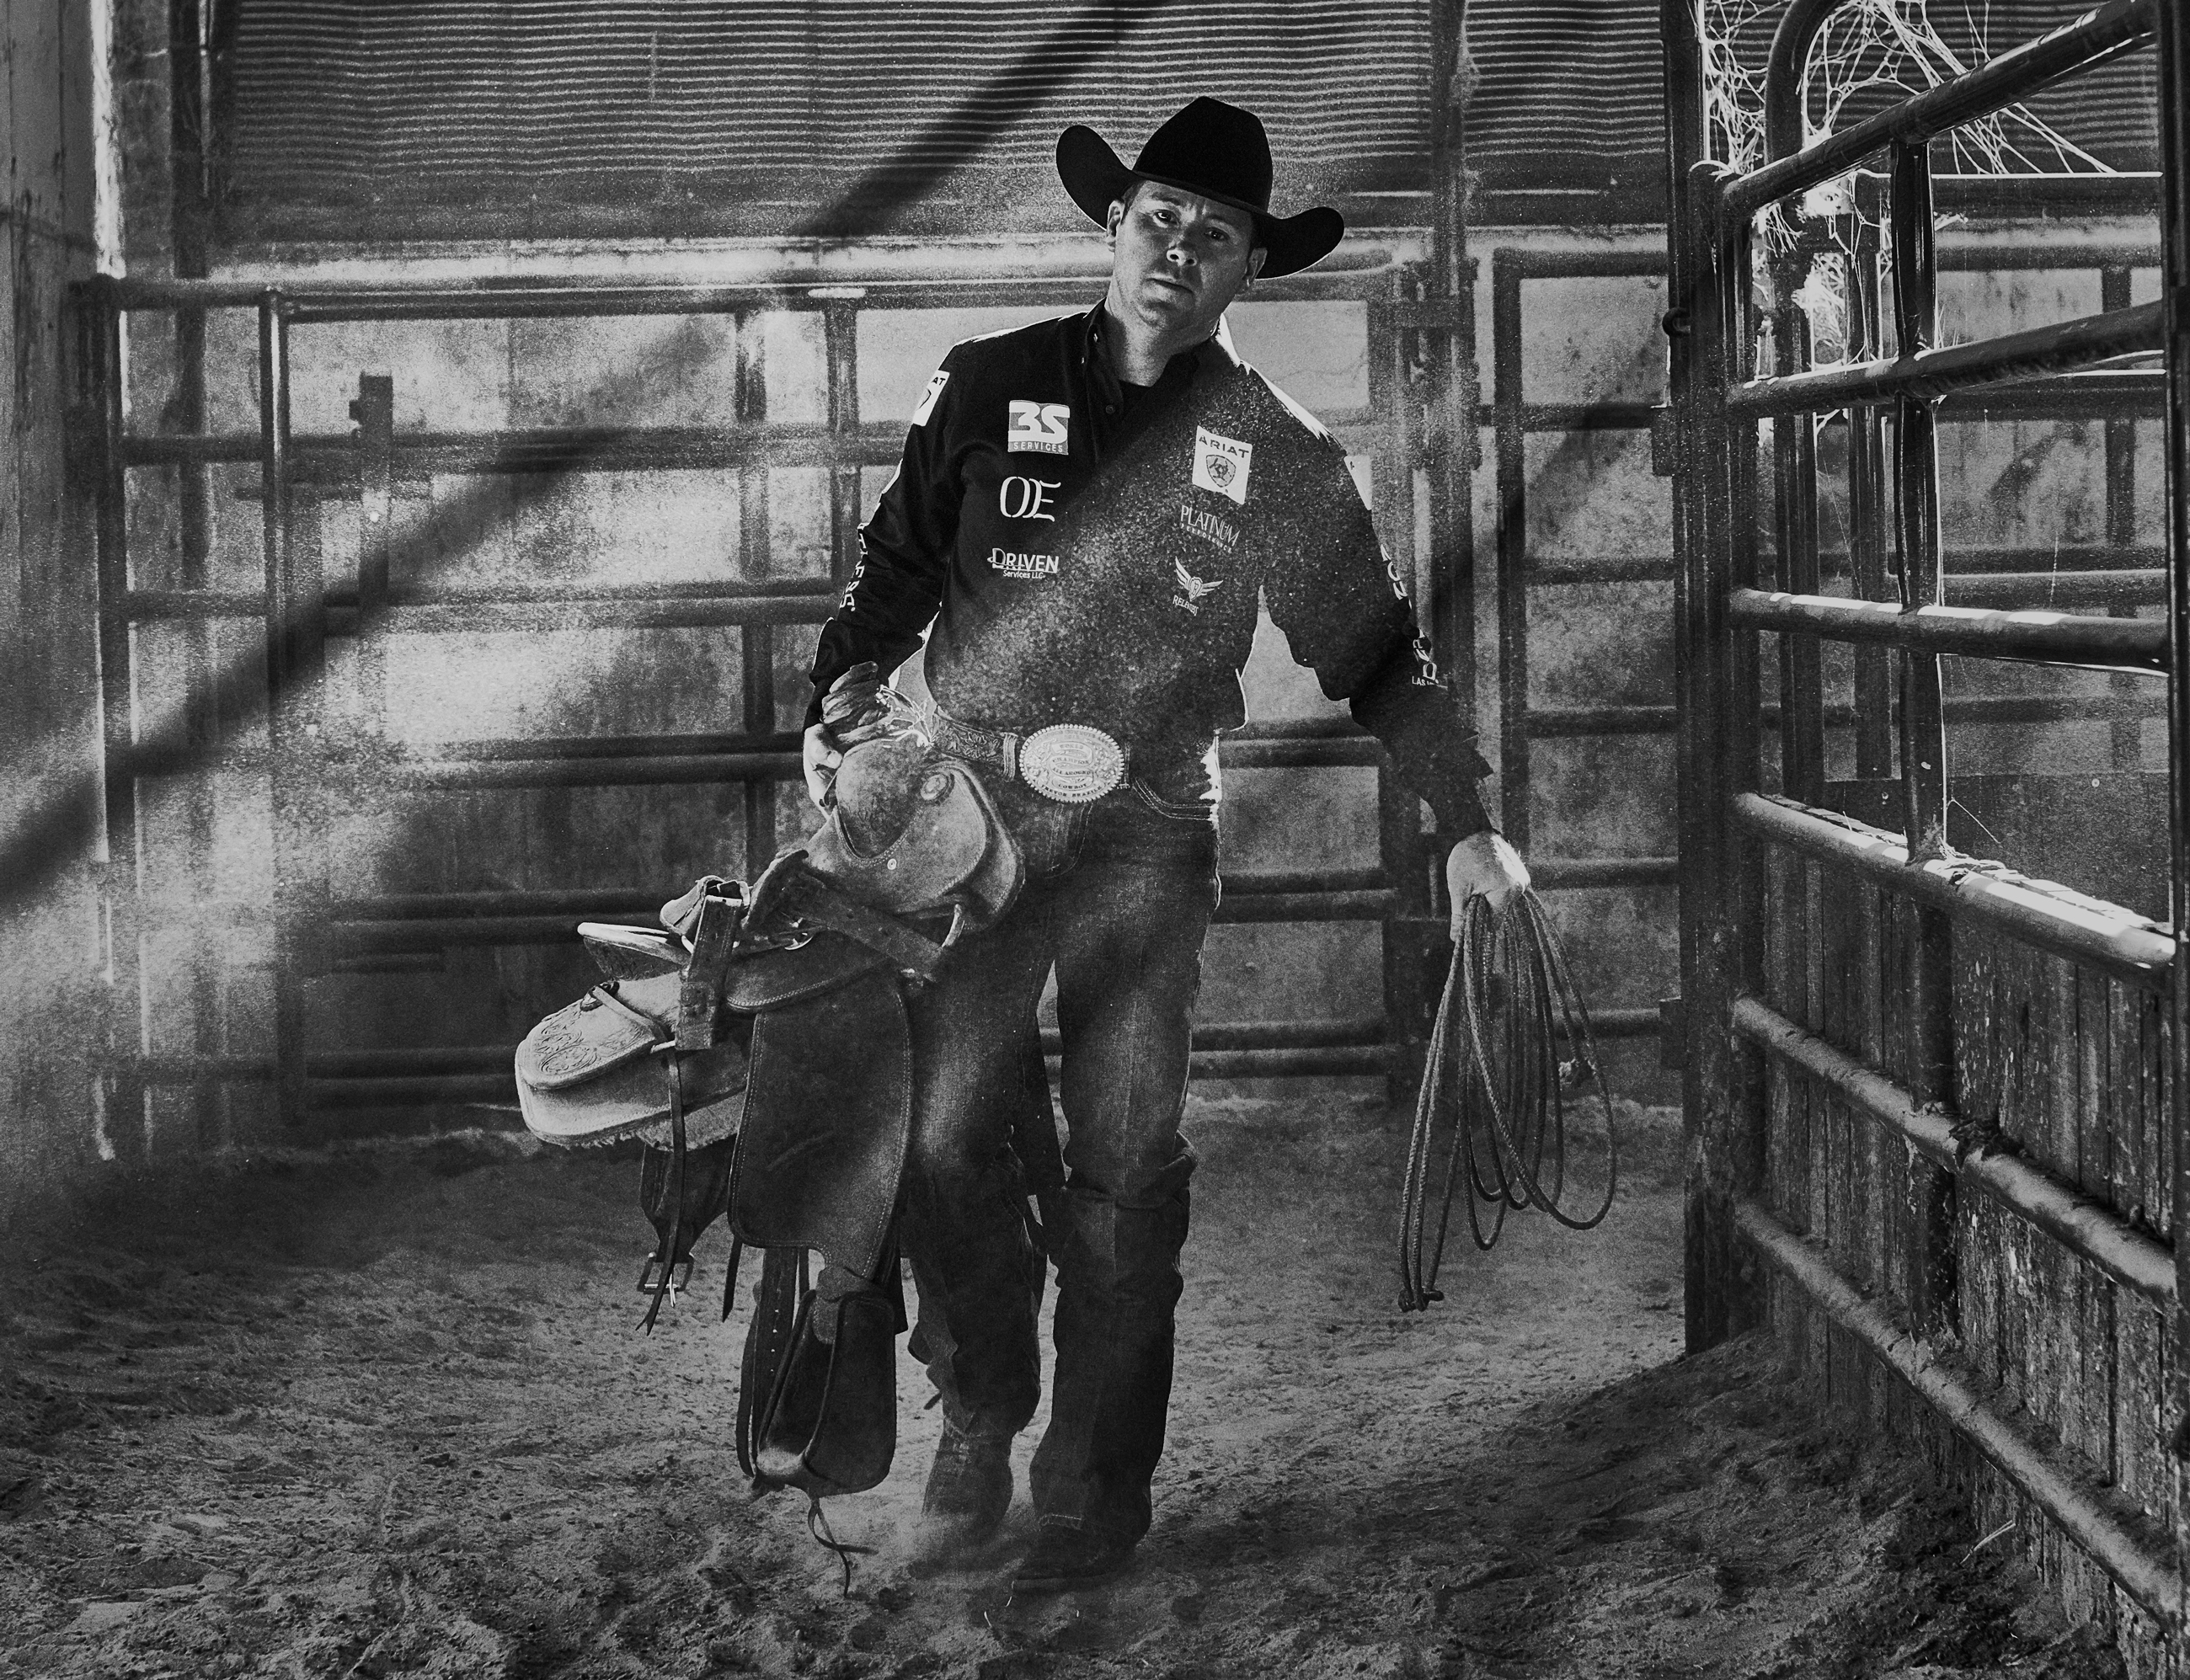 Dramatic scene of cowboy walking through stable with equestrian gear and rope